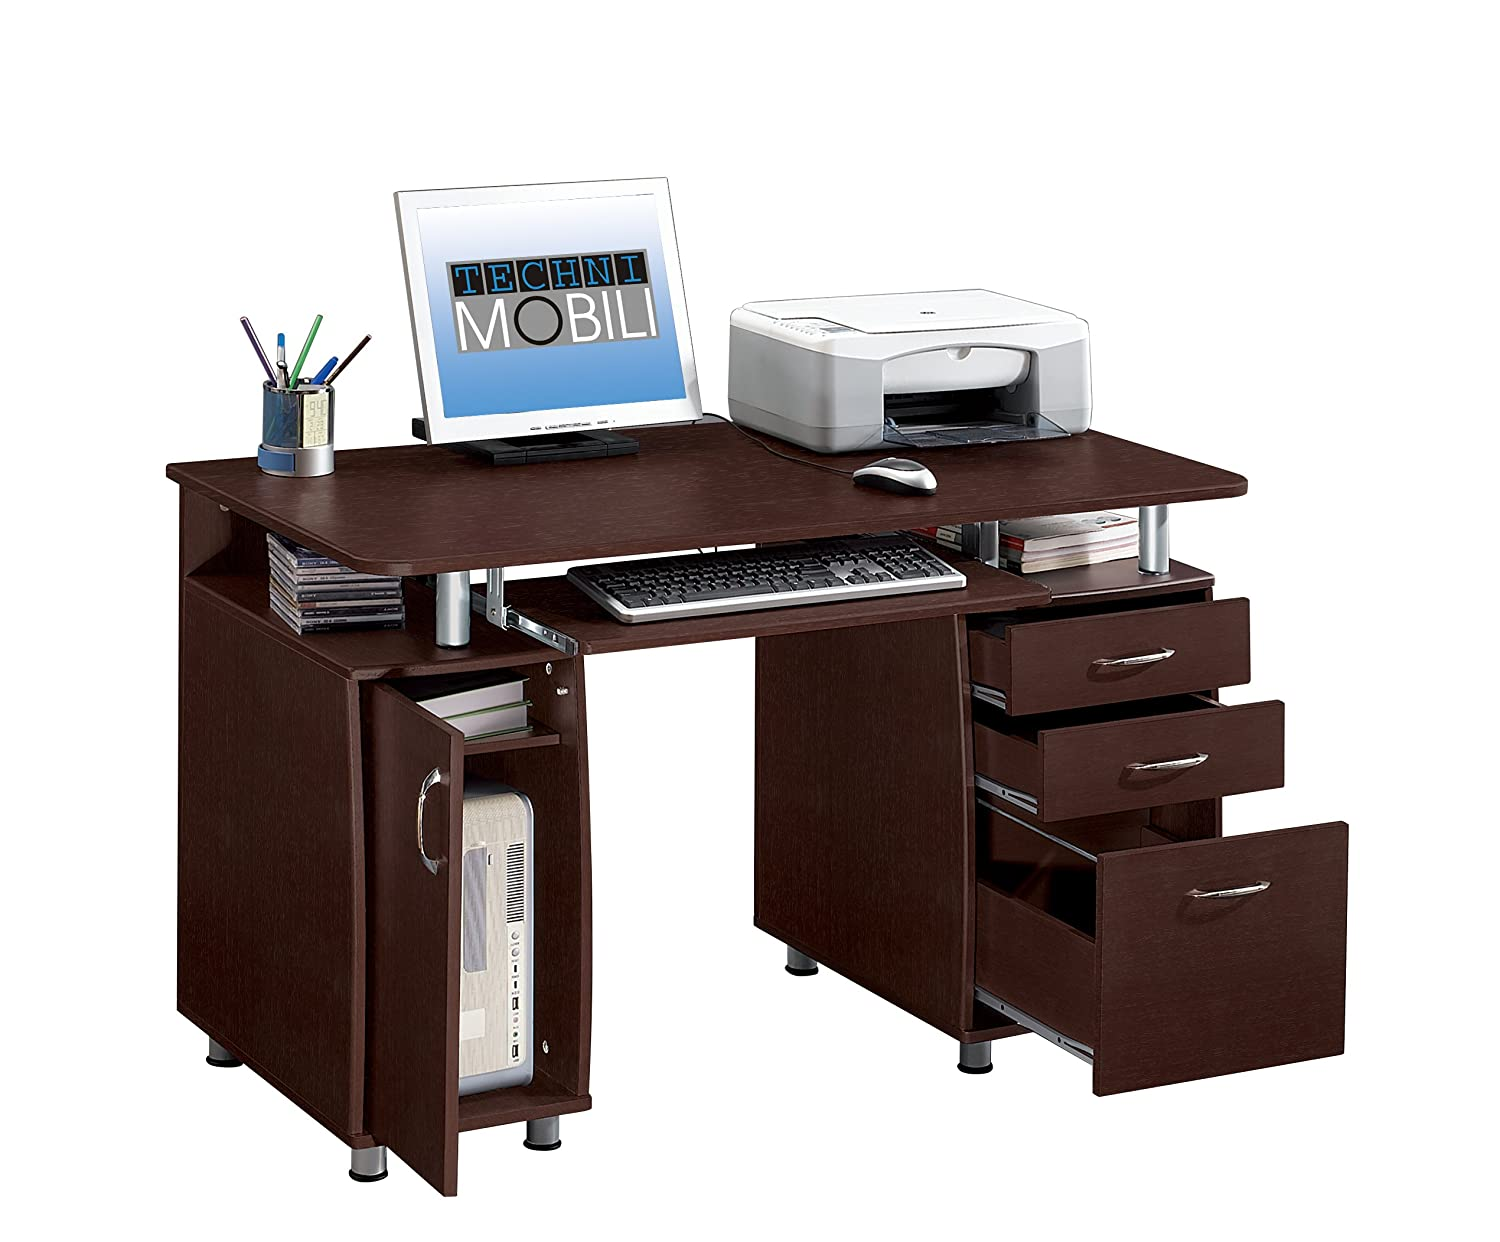 com with workstation techni dp computer desk office storage espresso mobili complete products amazon